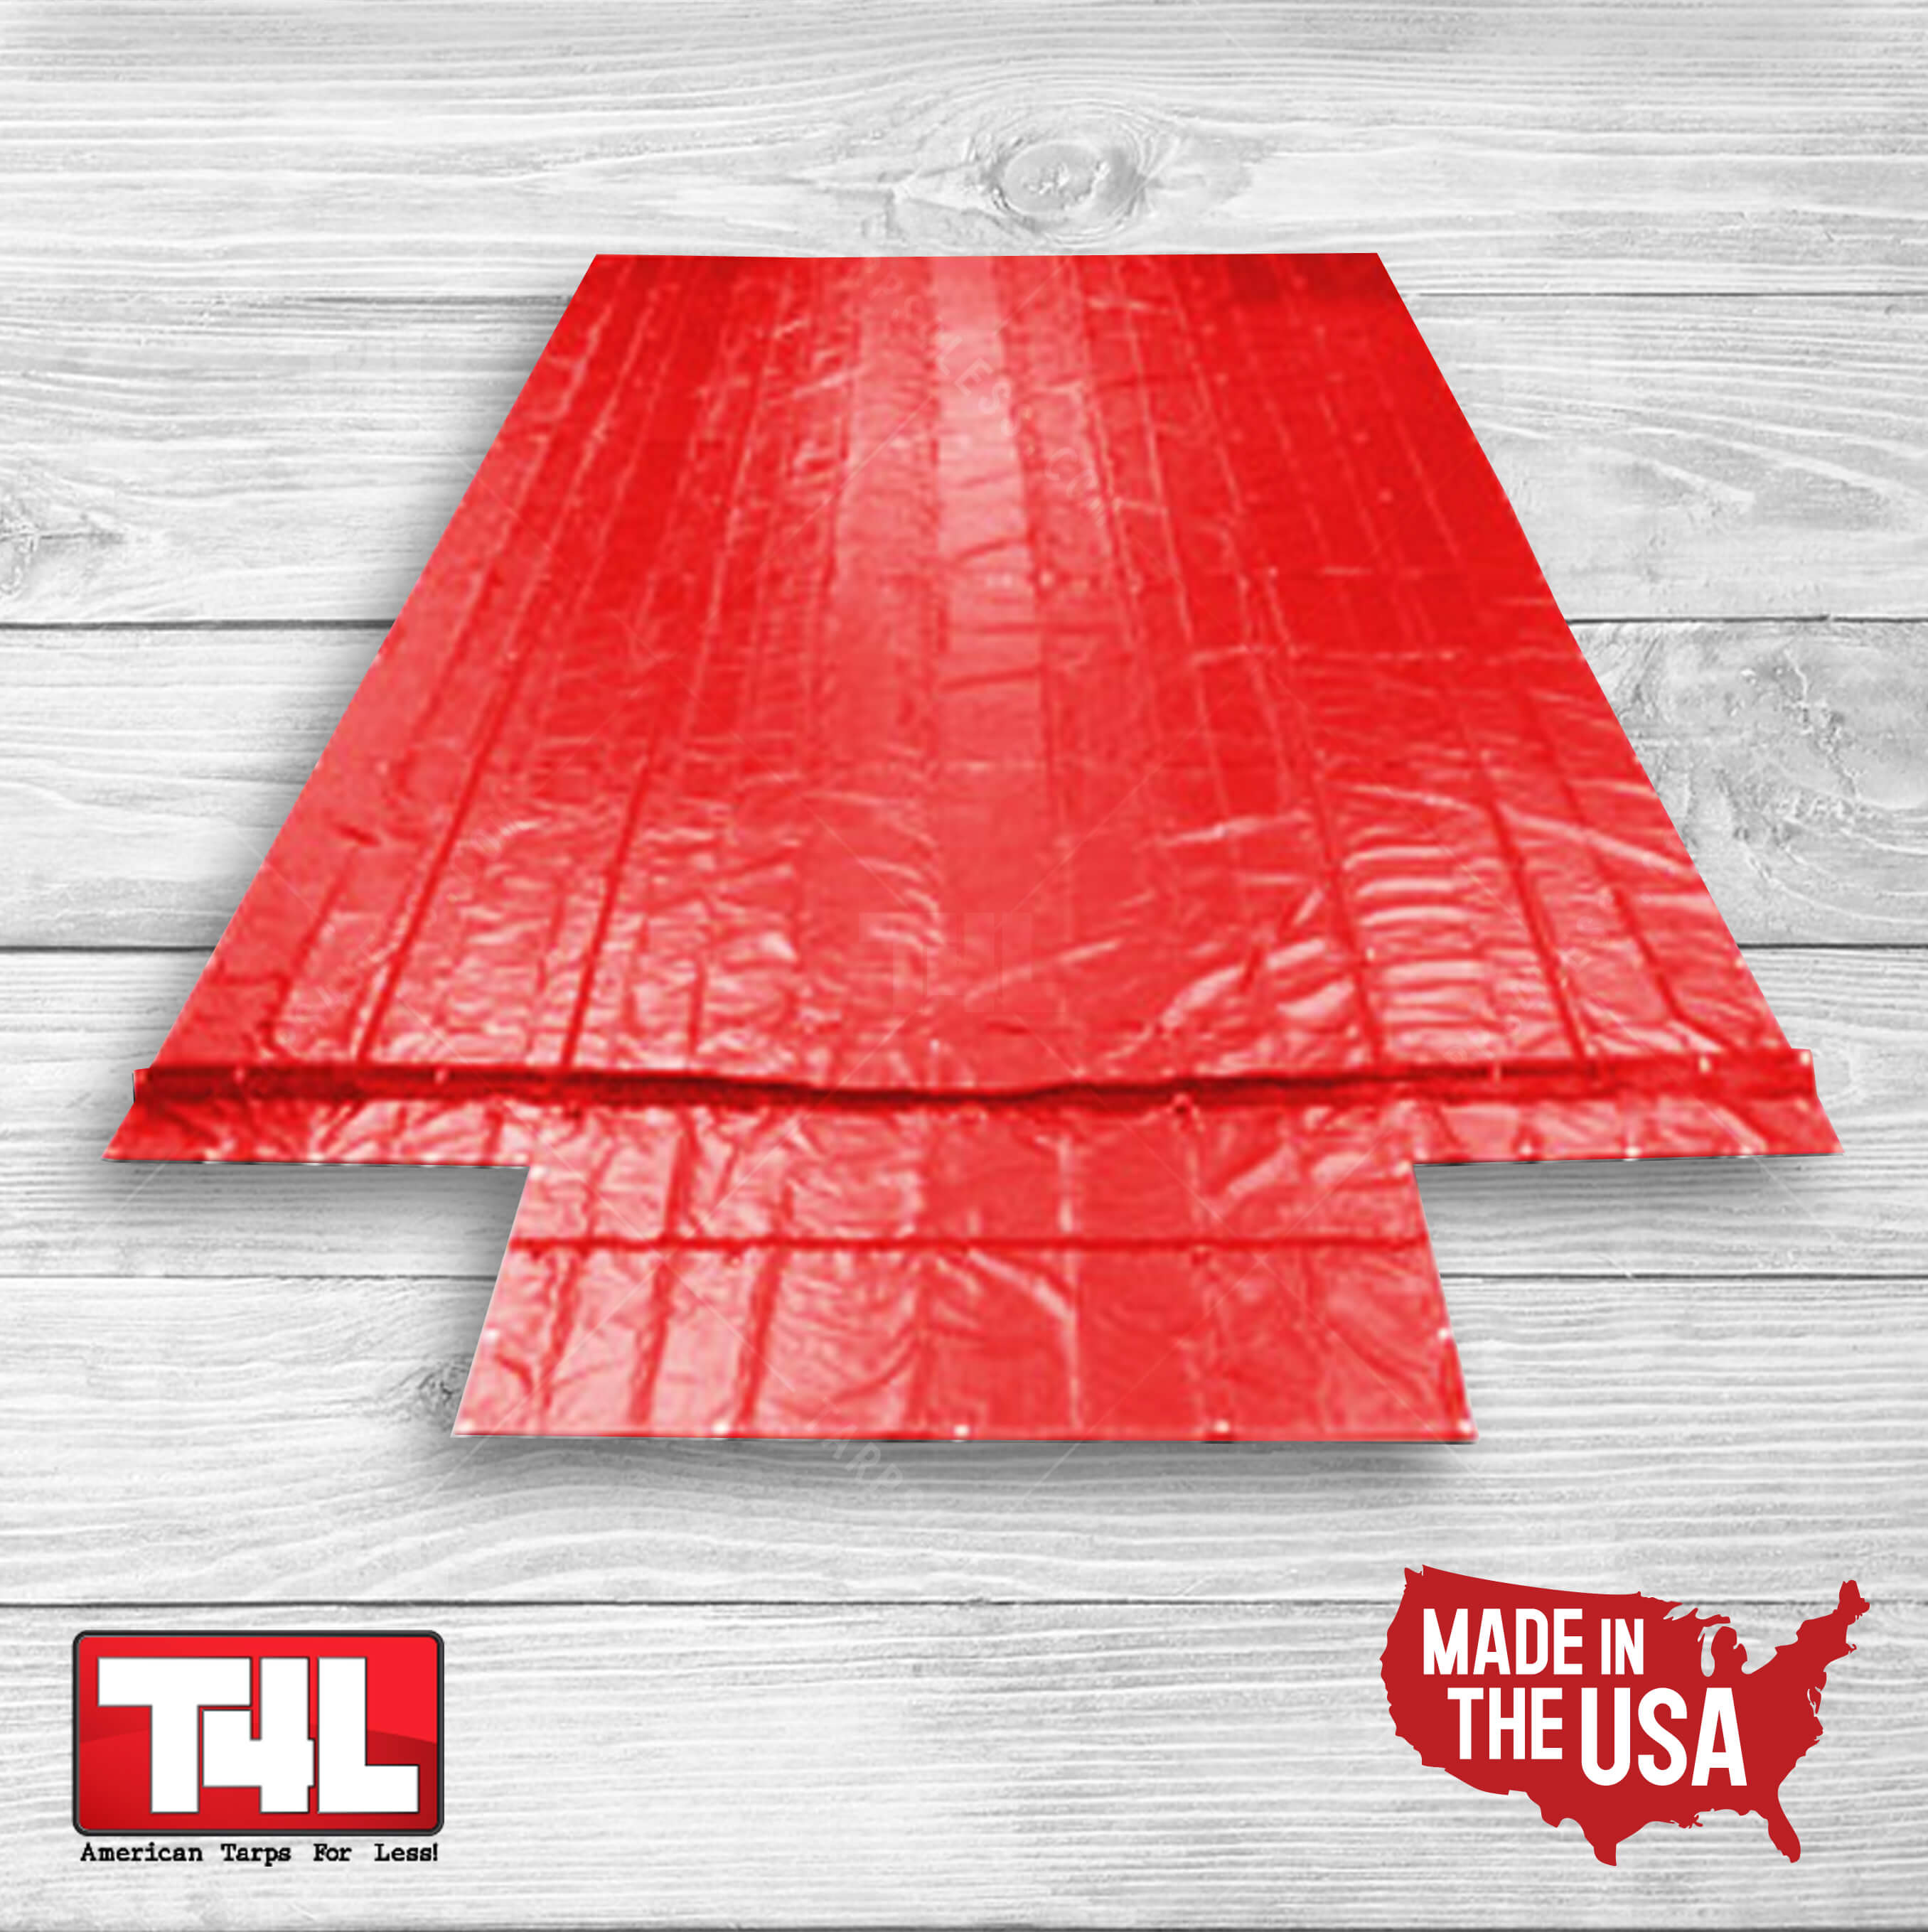 26' x 26' Machinery Tarp (9' DROP) red